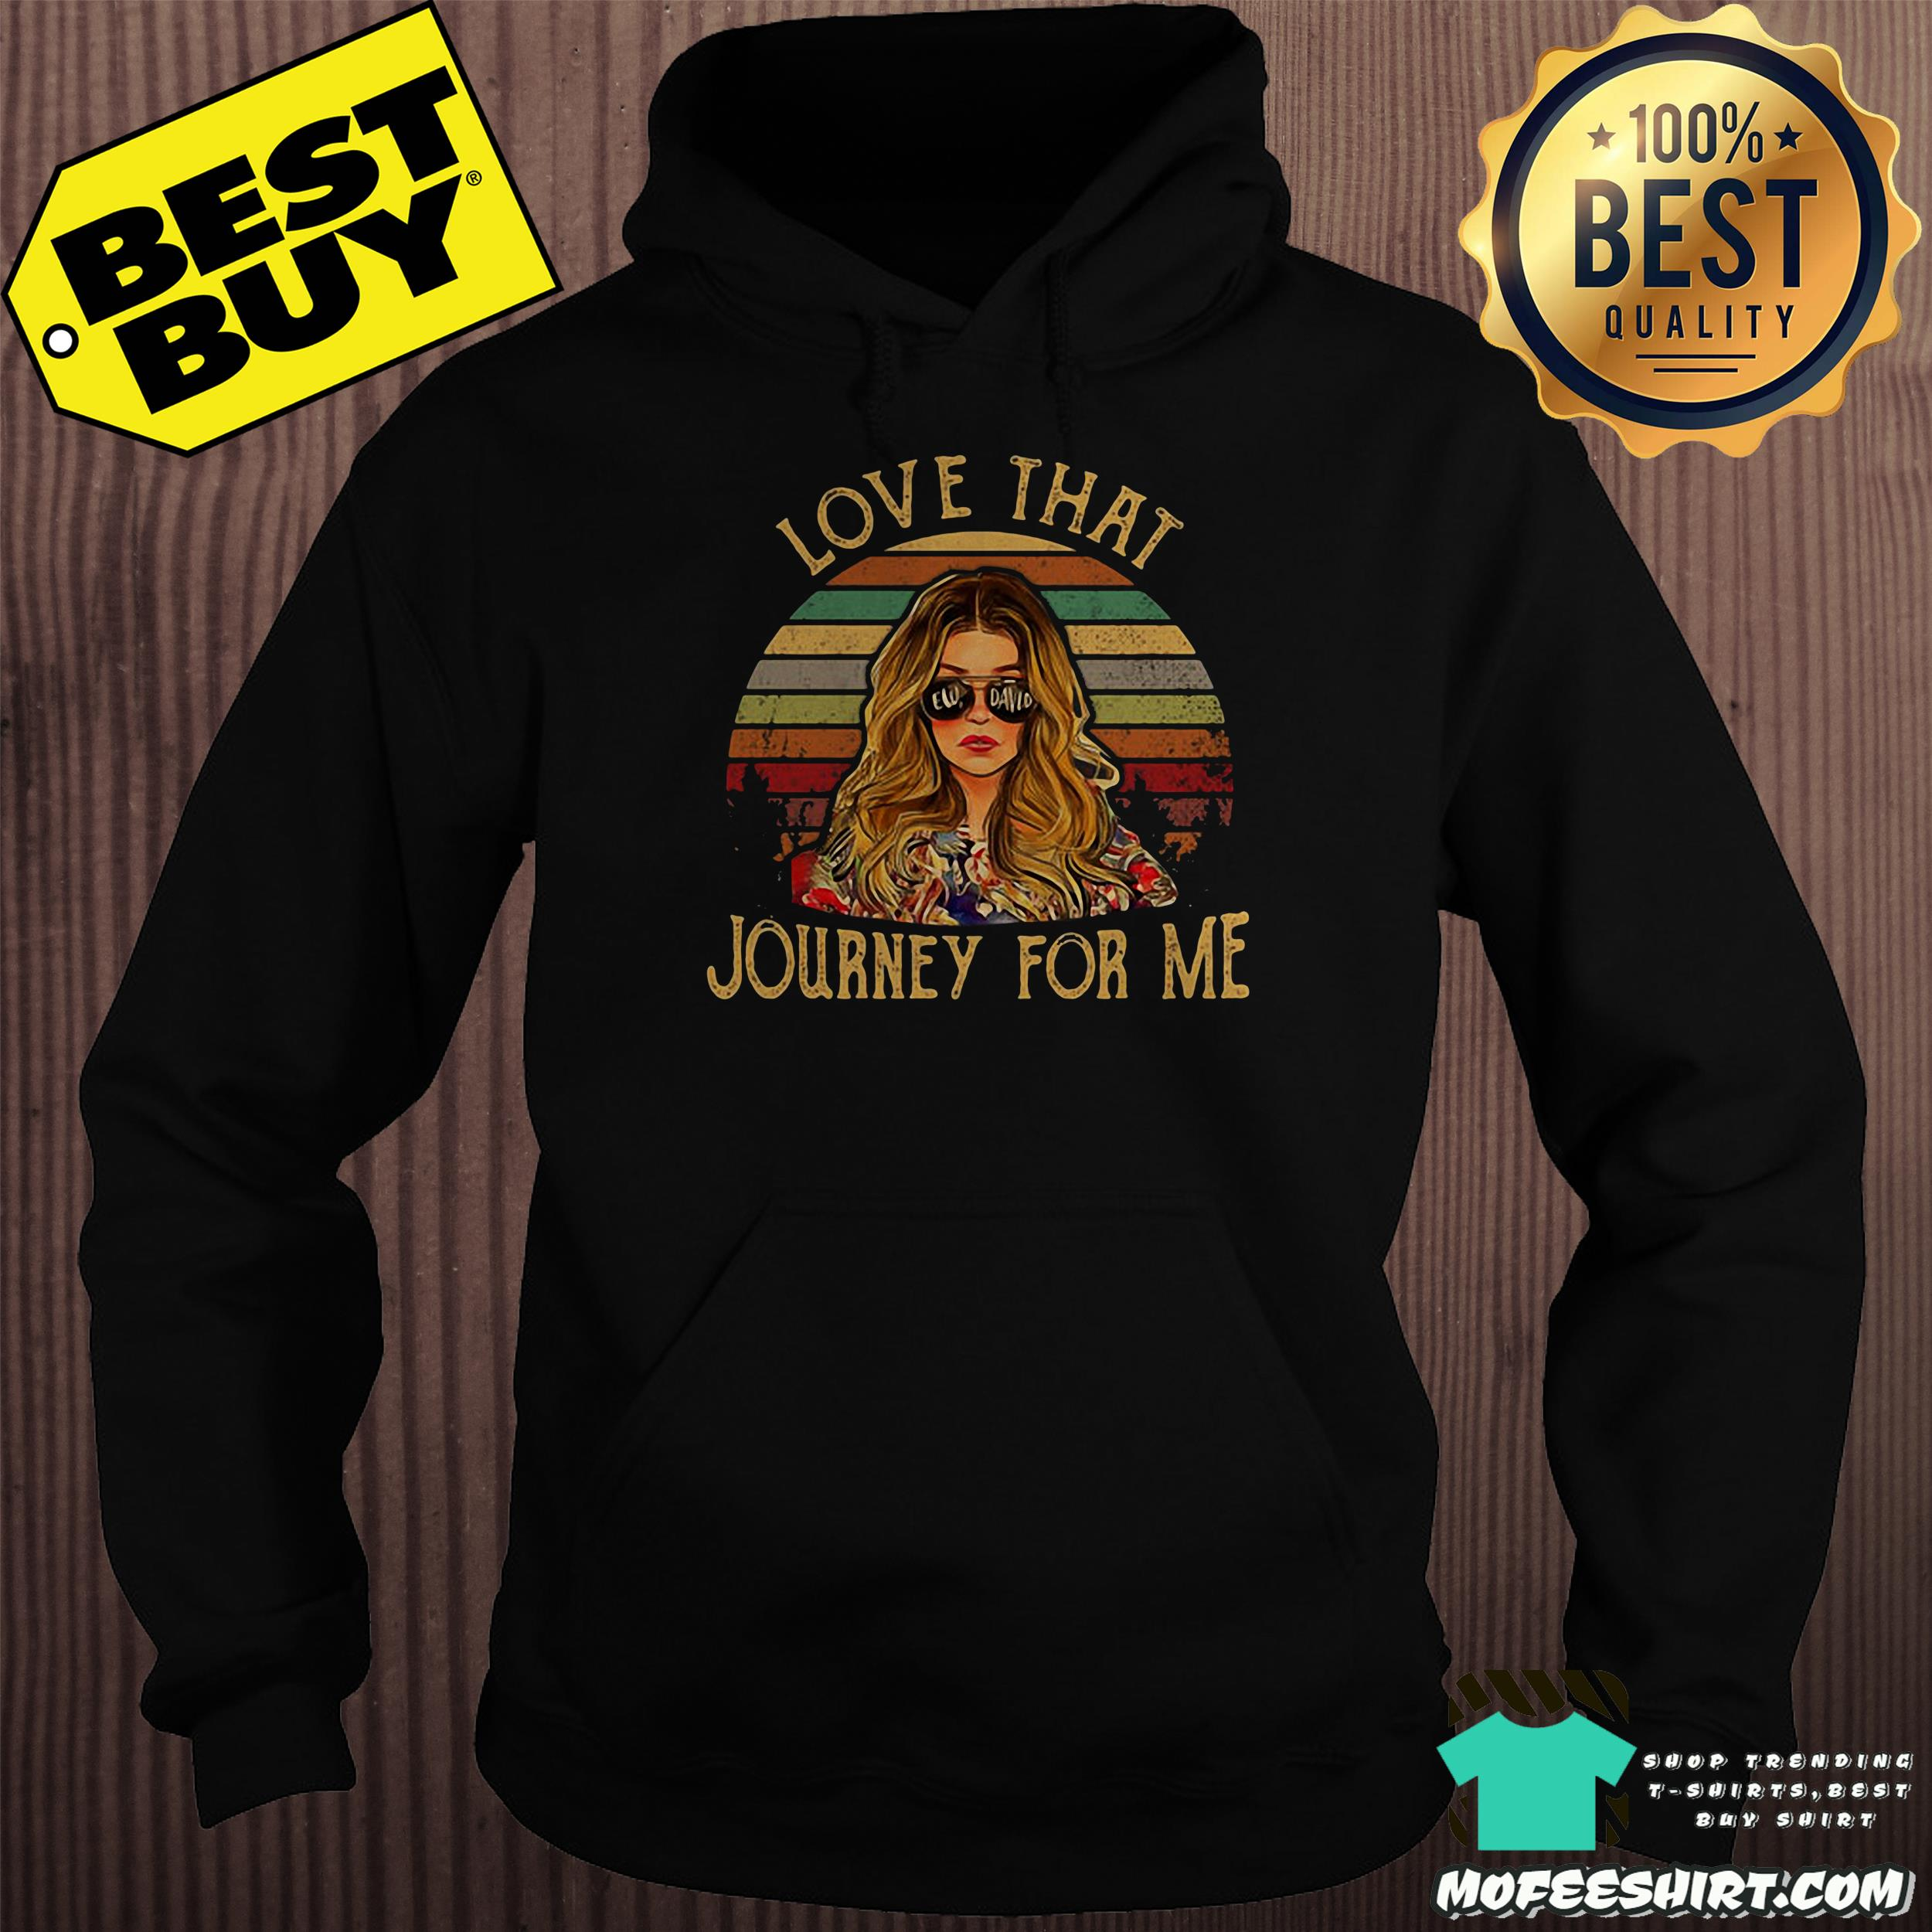 4 1 - Ew David love that Journey for me vintage shirt